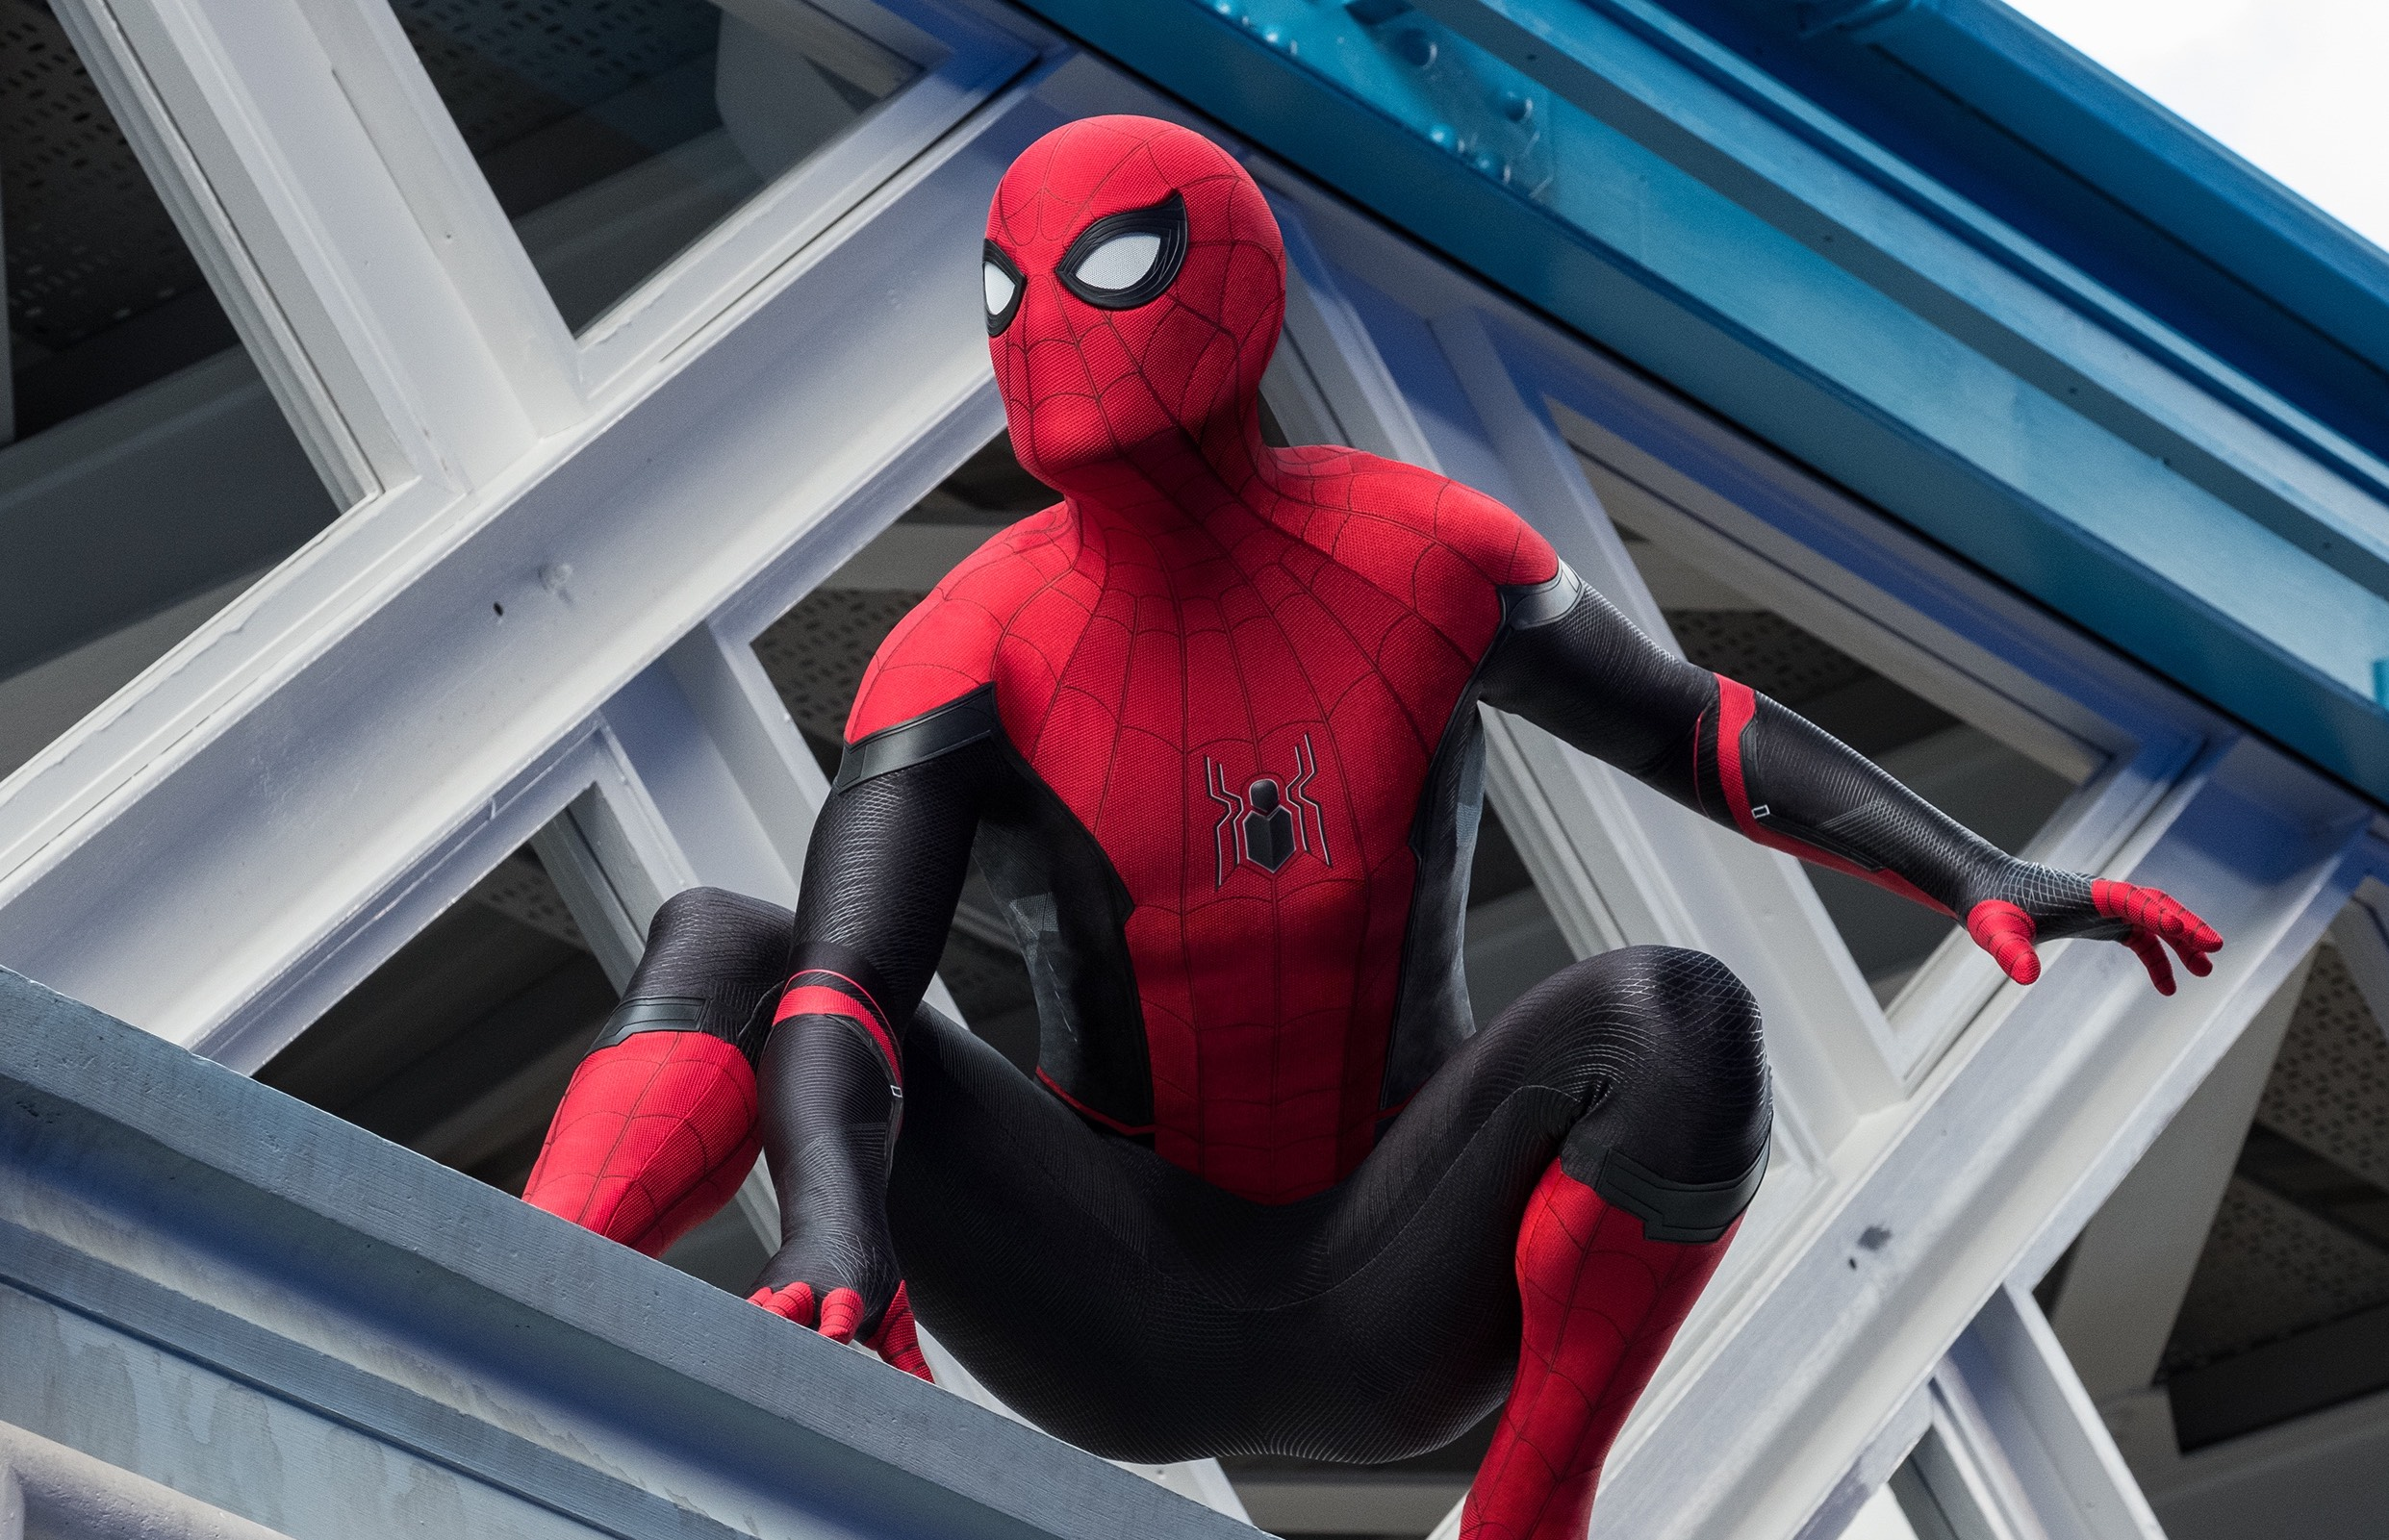 The trailer for 'Spider-Man: No Way Home' is leaked and the internet is going crazy